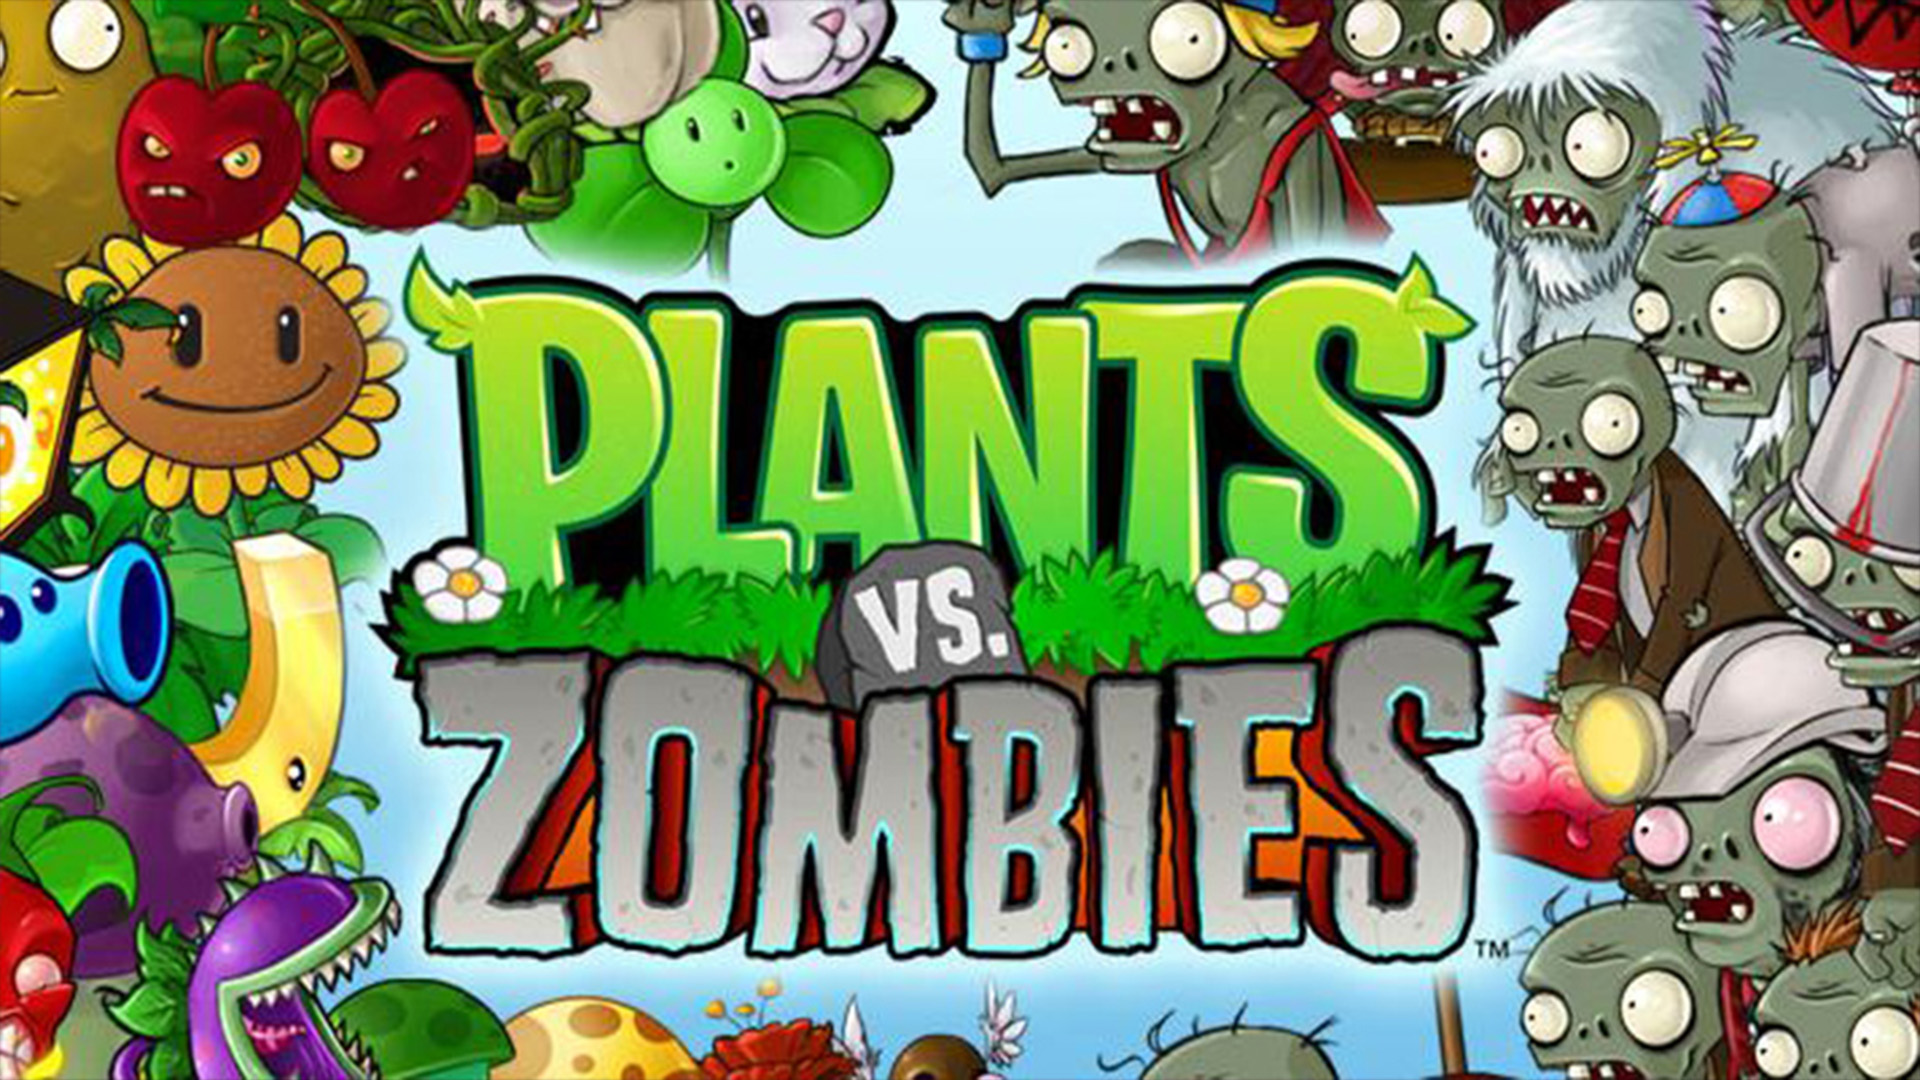 12 plants vs zombies hd wallpapers background images